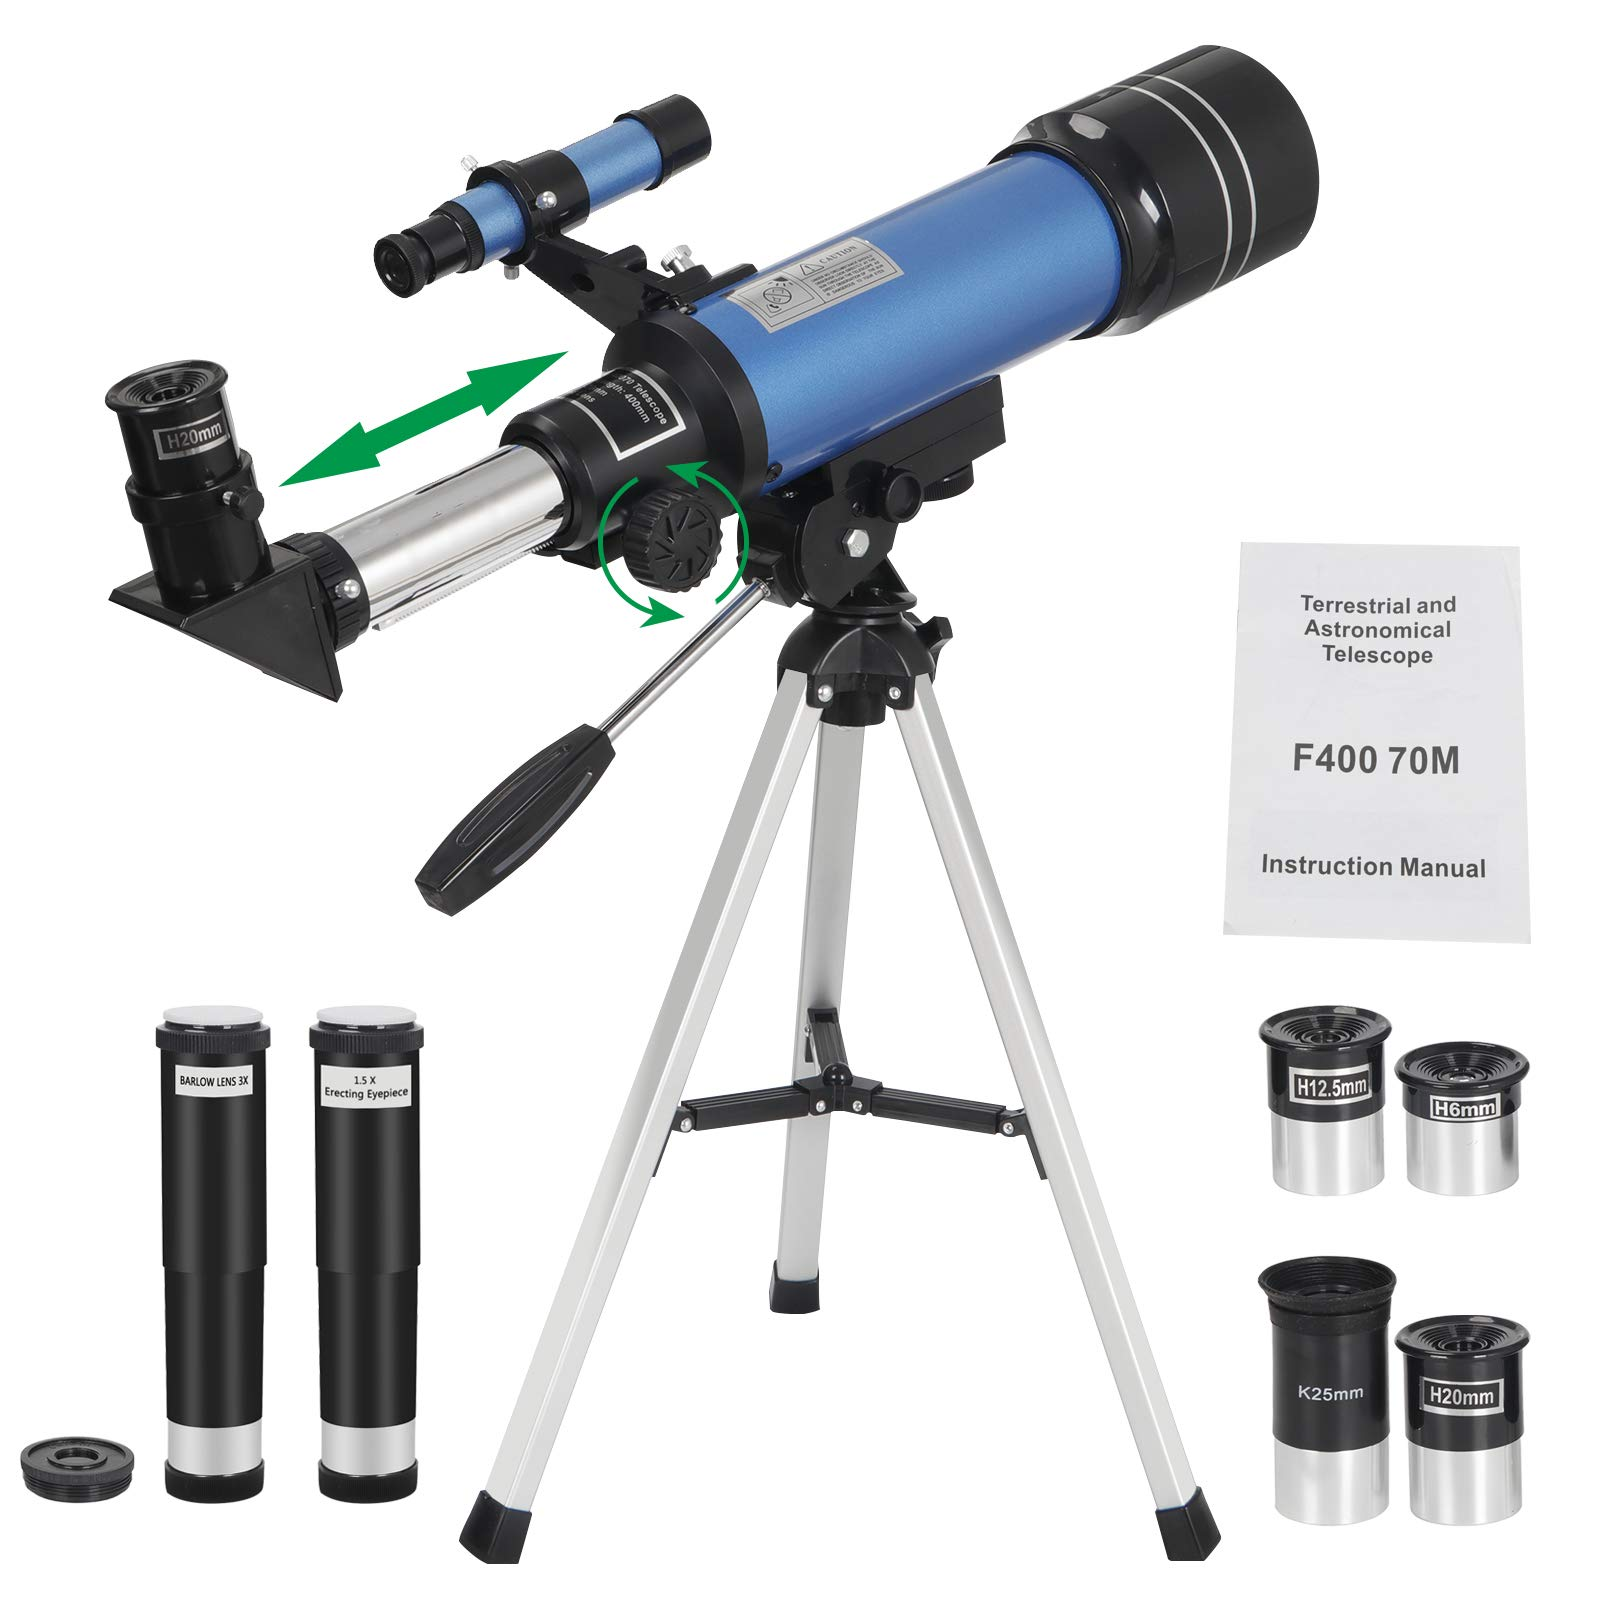 ZENY 70mm Refractor Telescope with Tripod & Finder Scope, 16X - 200X Magnification Travel Scope with 3 Magnification eyepieces & Moon Mirror Portable Telescope for Kids & Astronomy Beginners by ZENY